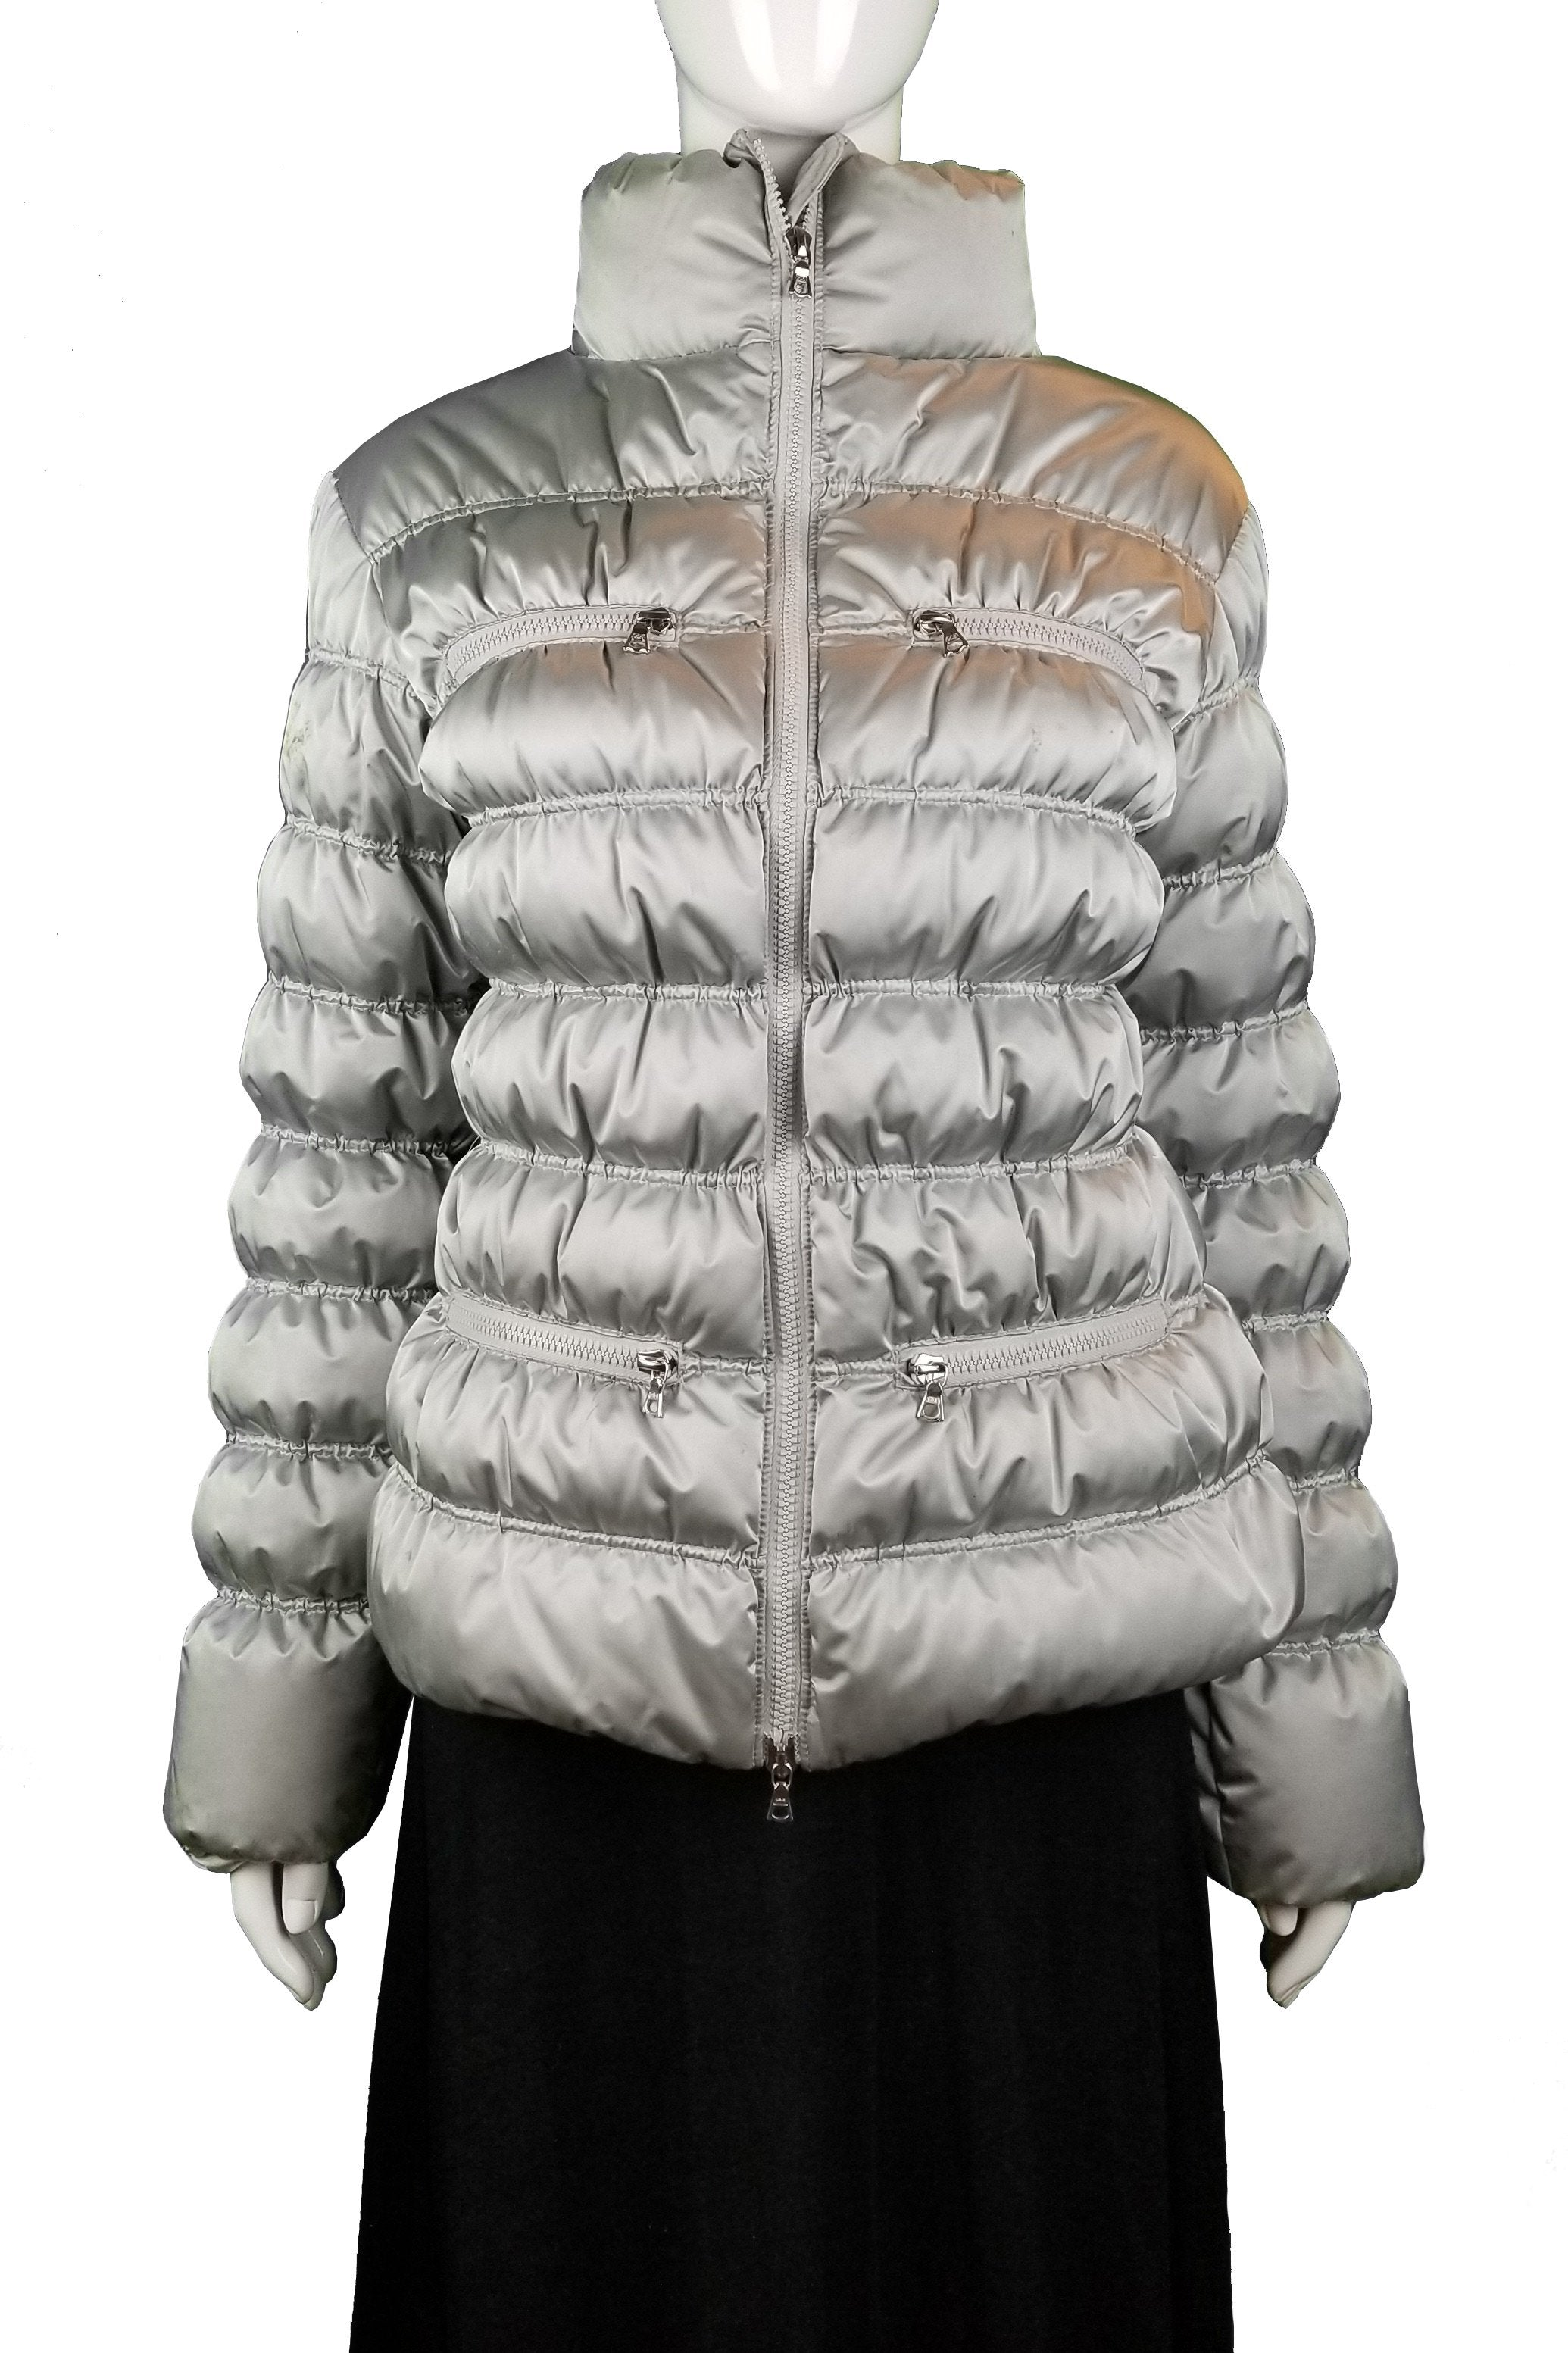 Frost Sportiva Winter Down Jacket, Beautifully designed in the Rocky Mountains for the stiff winters. , White, Shell and lining: 100% polyester; filling: 100% goose down, women's Jackets & Coats, women's White Jackets & Coats, Frost Sportiva women's Jackets & Coats, Women's winter jacket, women's winter fashion, made in Canada, women's down jacket